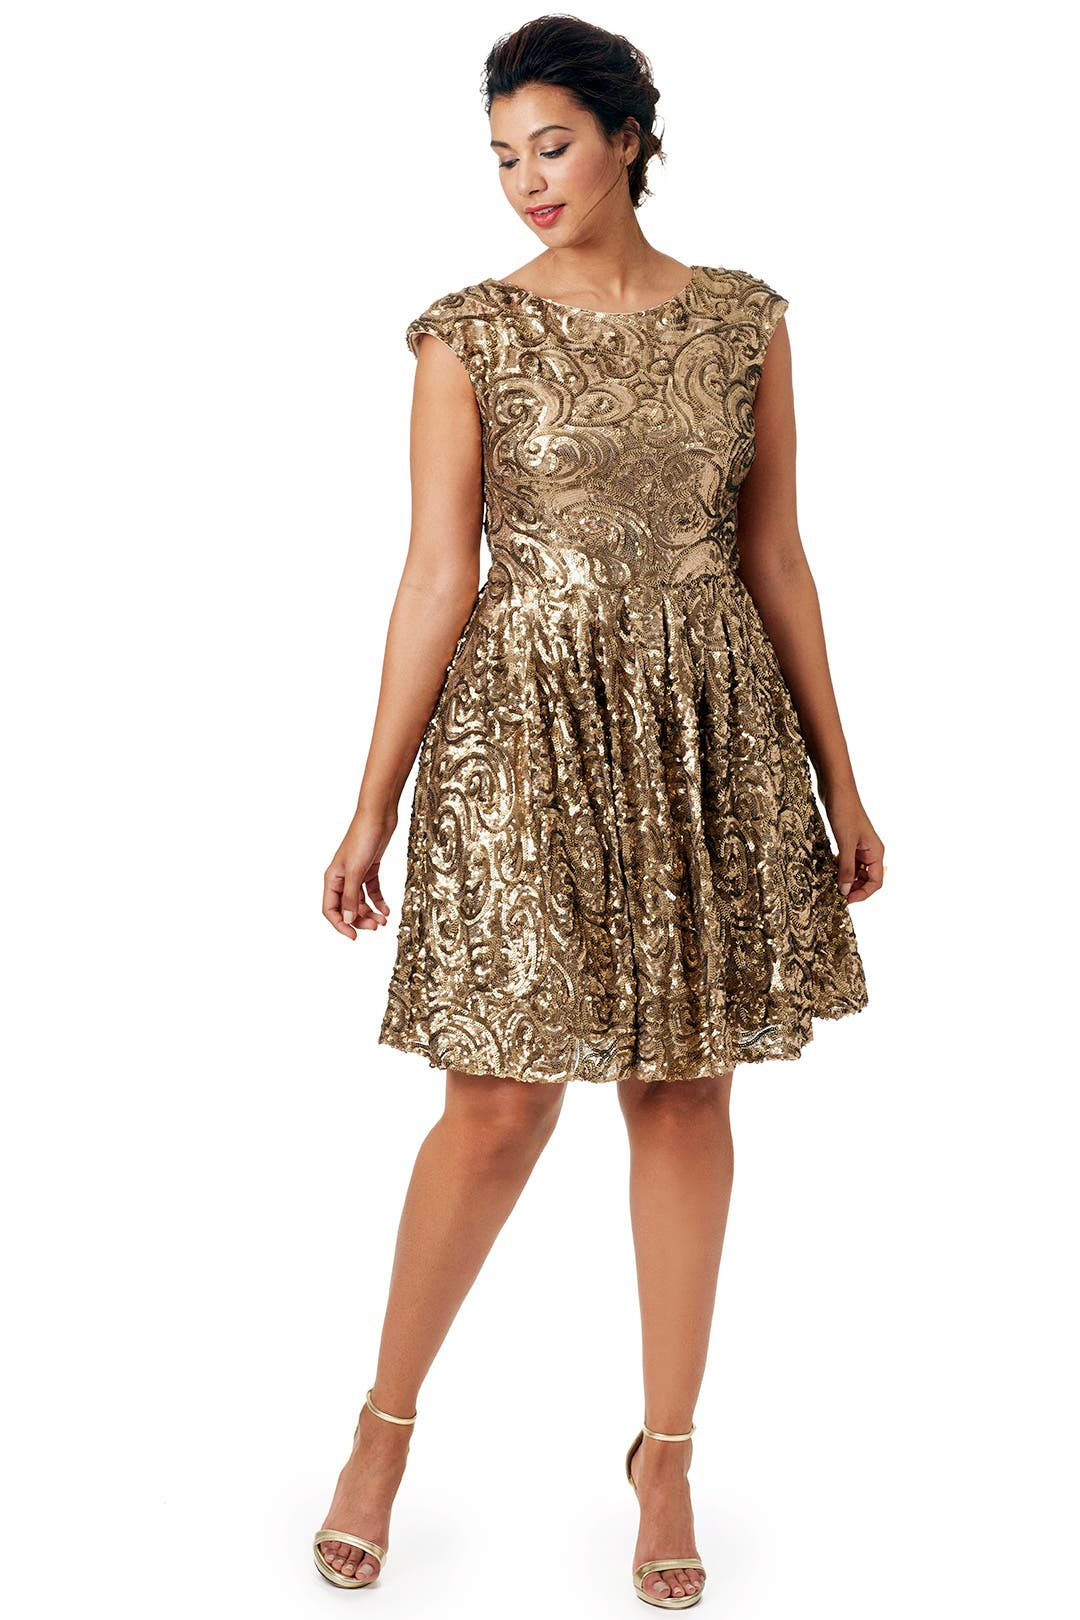 Gilded Flowers Dress By Badgley Mischka For 35 Rent The